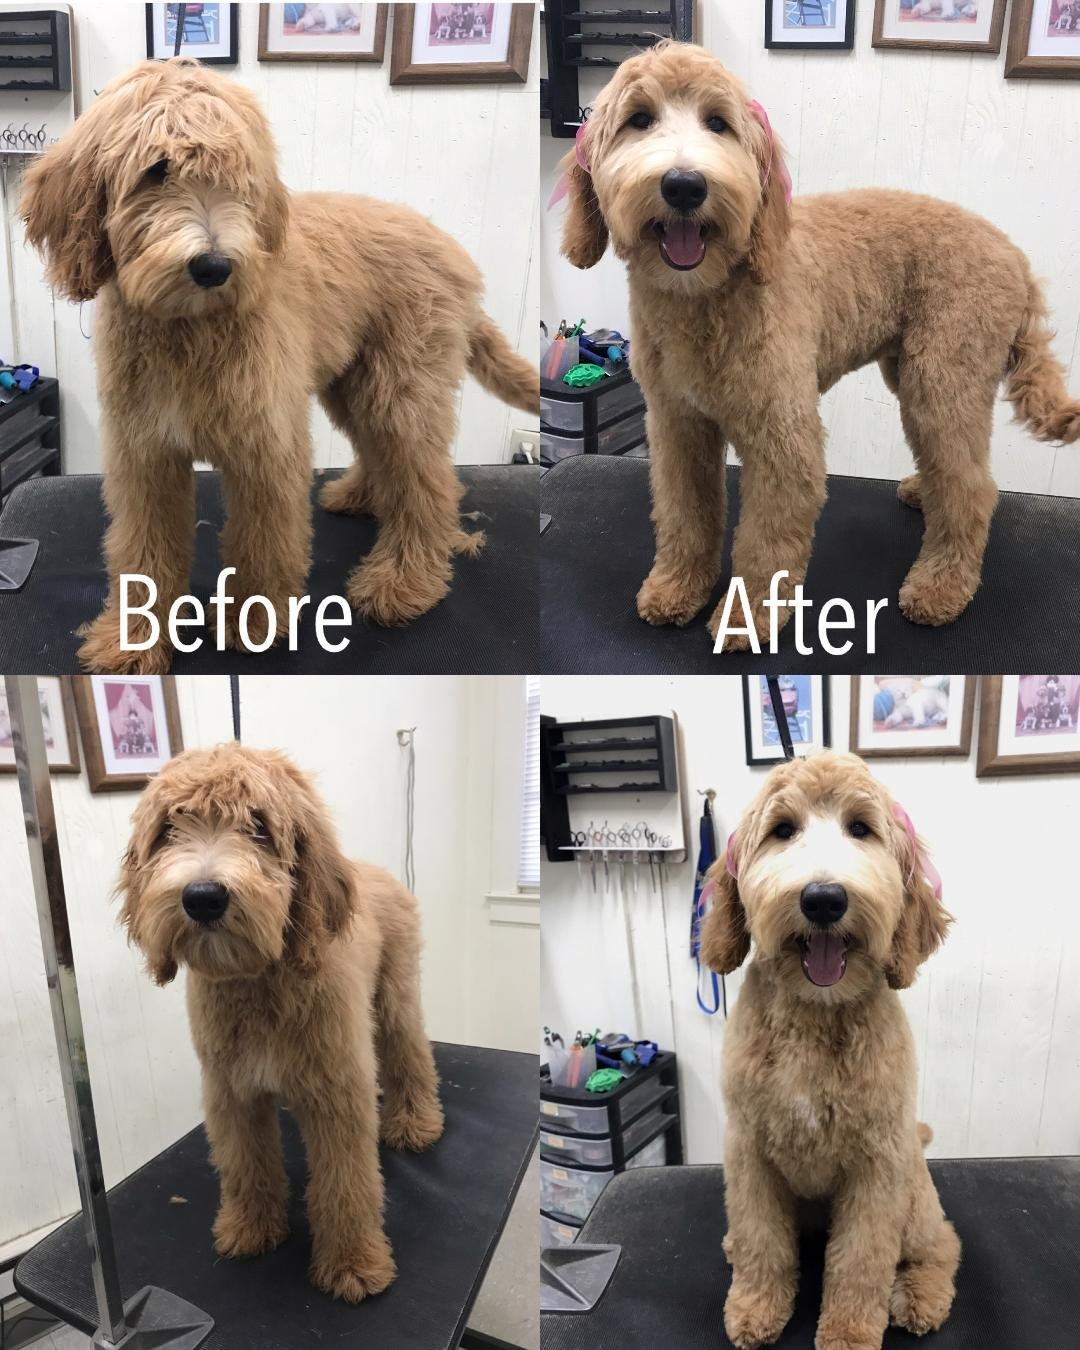 Grooming can be quite beneficial to a Labradoodle